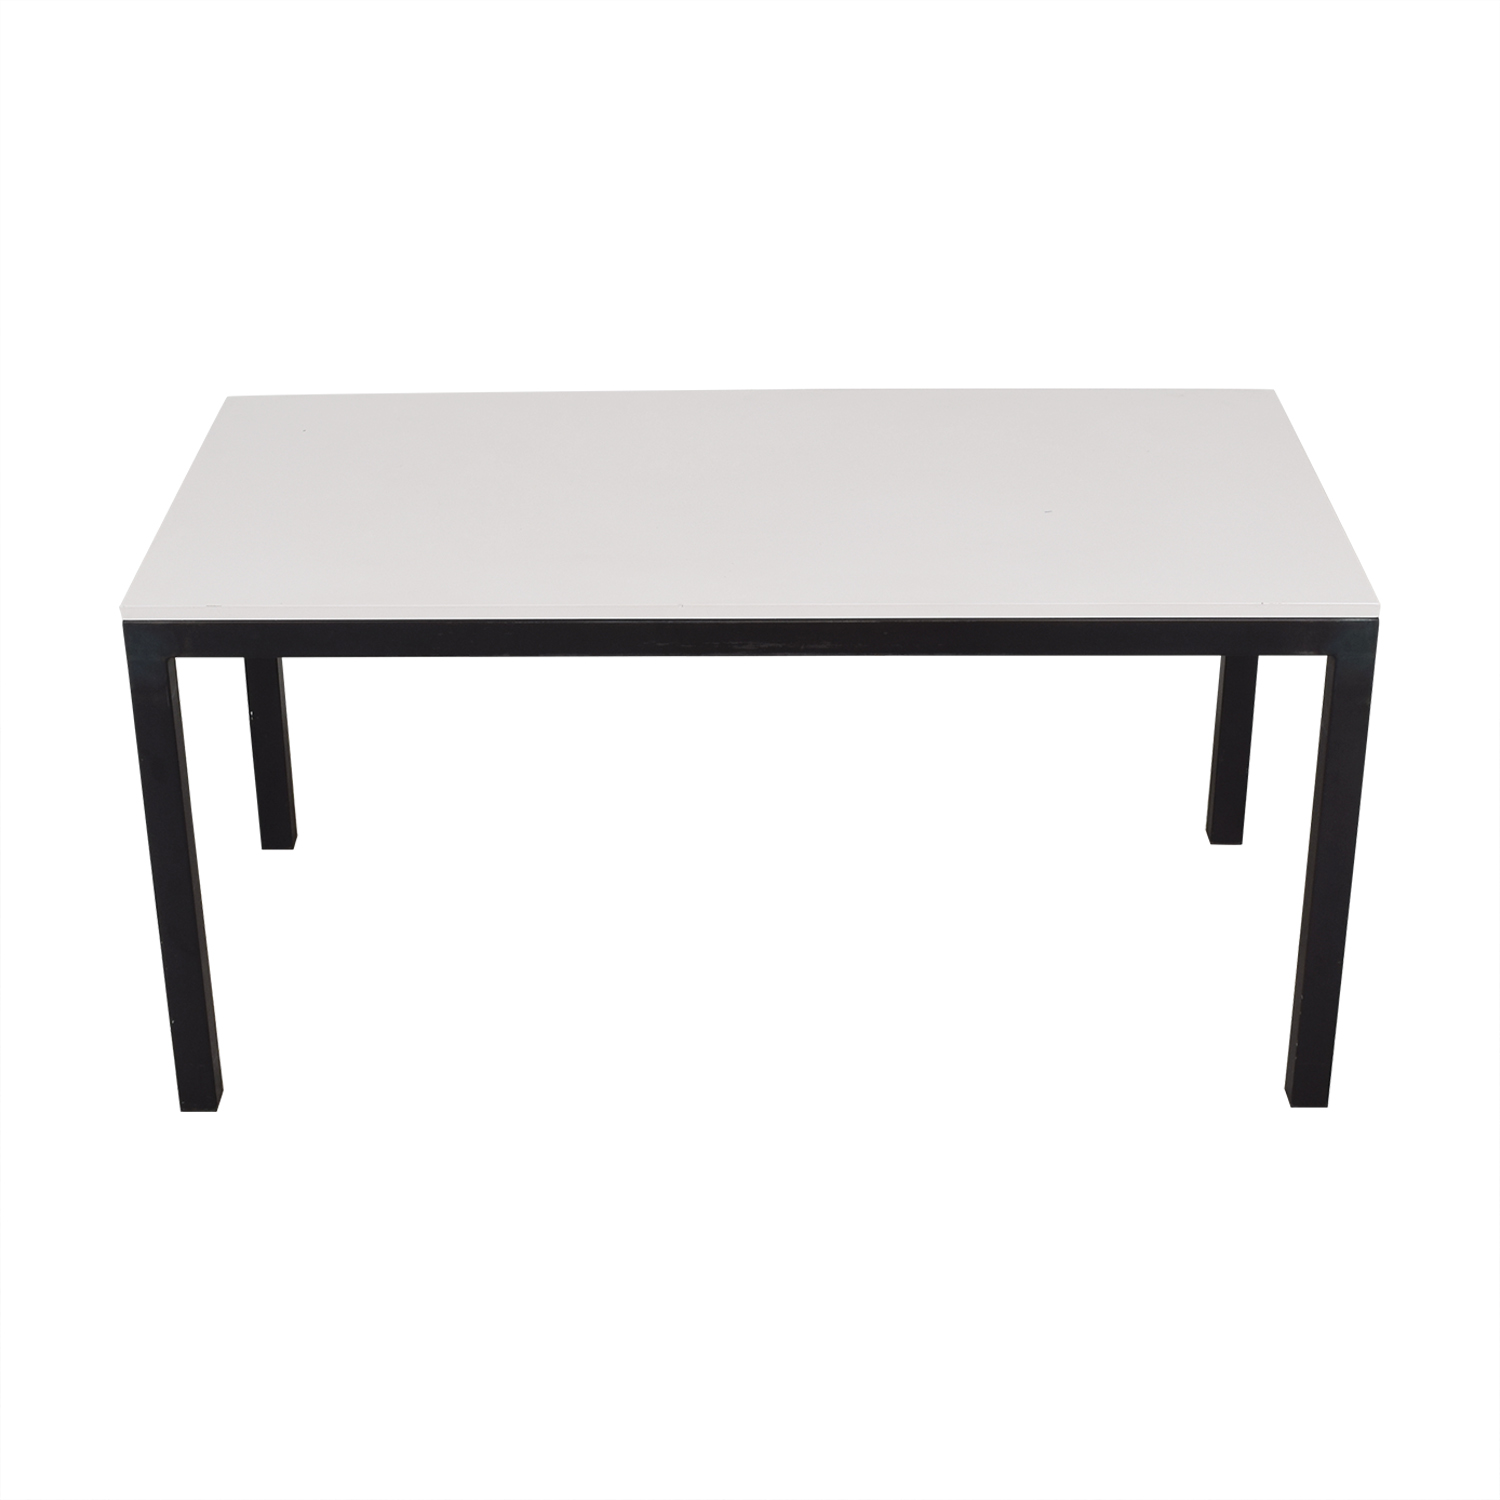 Room & Board Room & Board Parson Table coupon